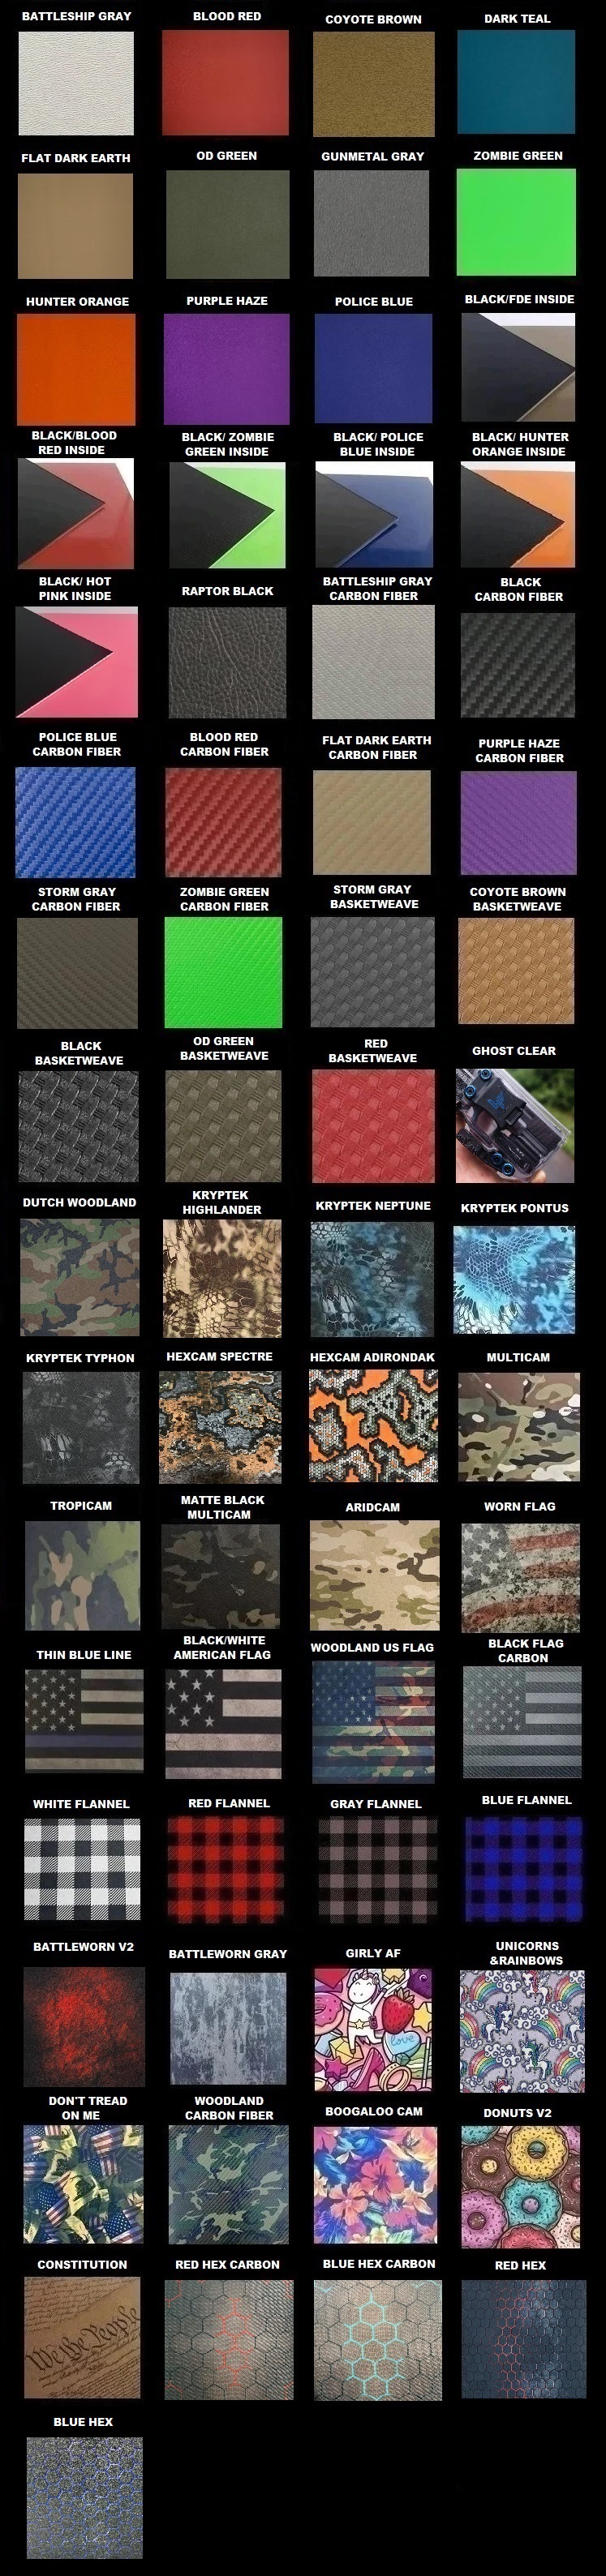 all-colors-and-patterns.jpg